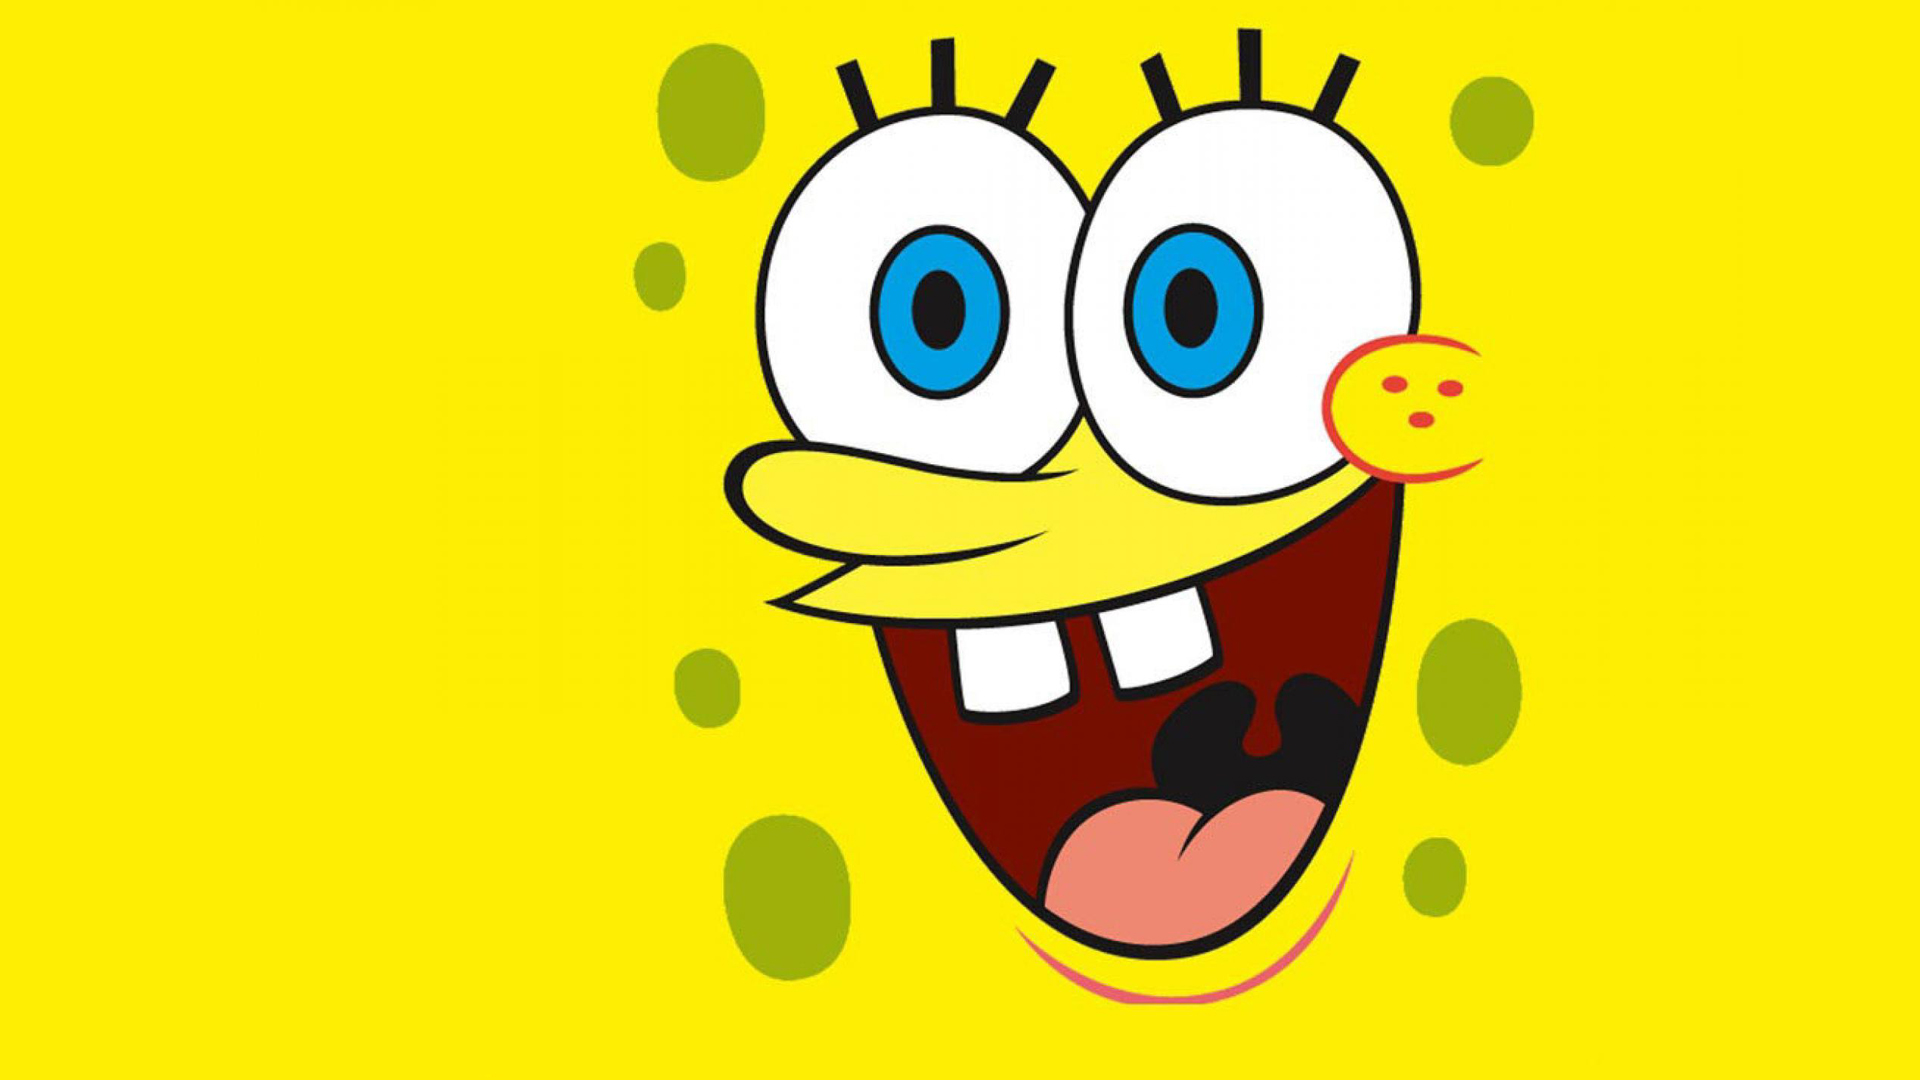 Mickey 3d Png >> Spongebob Squarepants Wallpapers, Pictures, Images